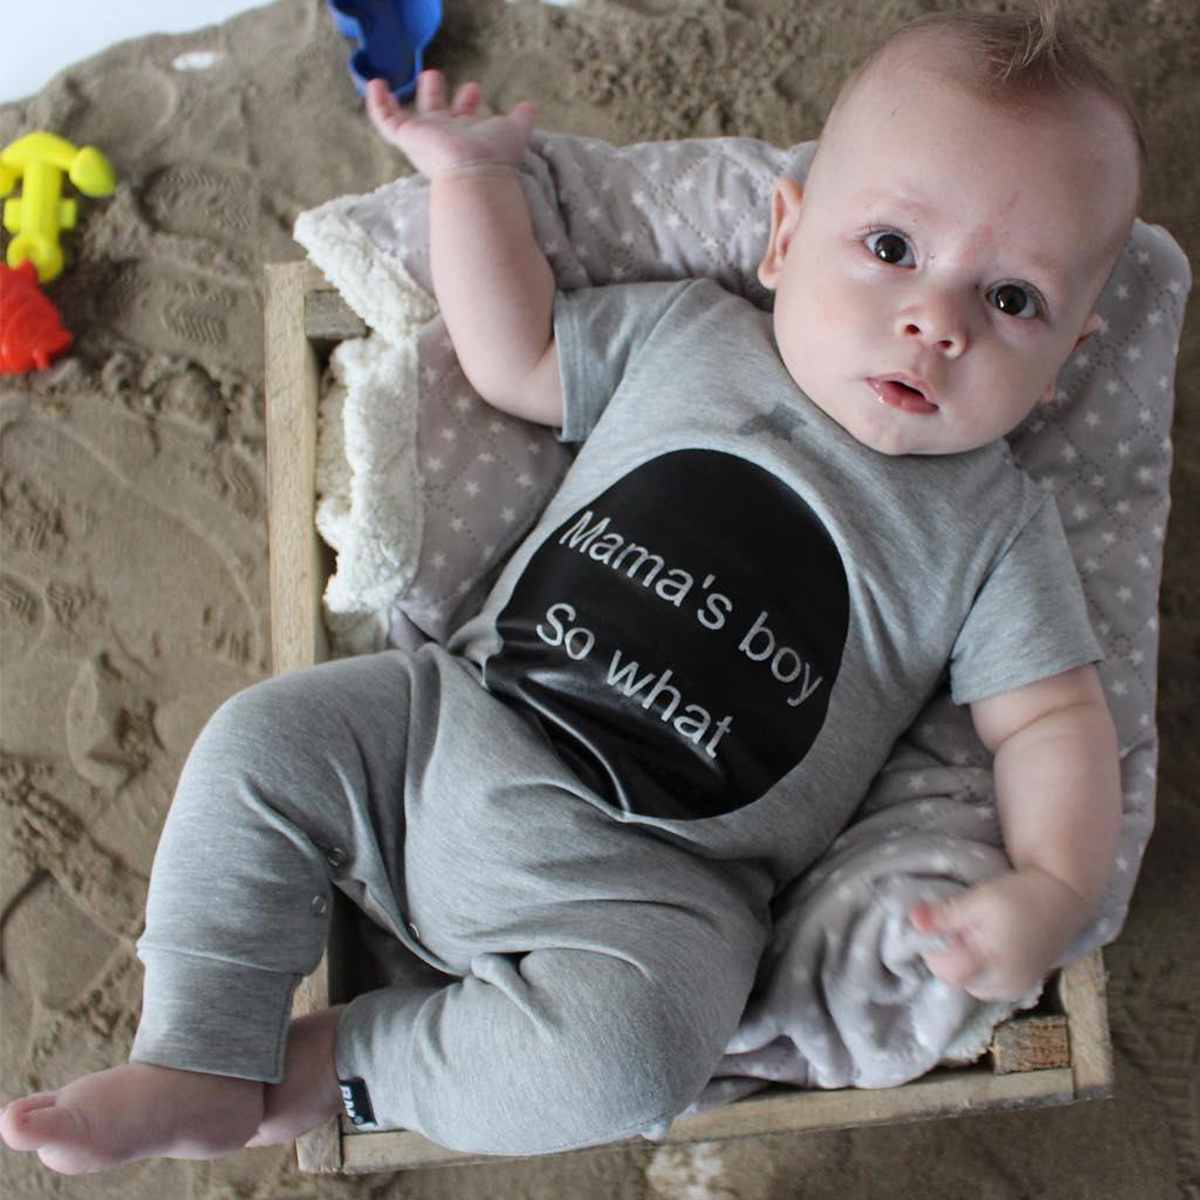 Summer 2018 mamas boy import baby clothes cute baby black clothes newborn 24m twins short sleeve baby boy romper infant in rompers from mother kids on